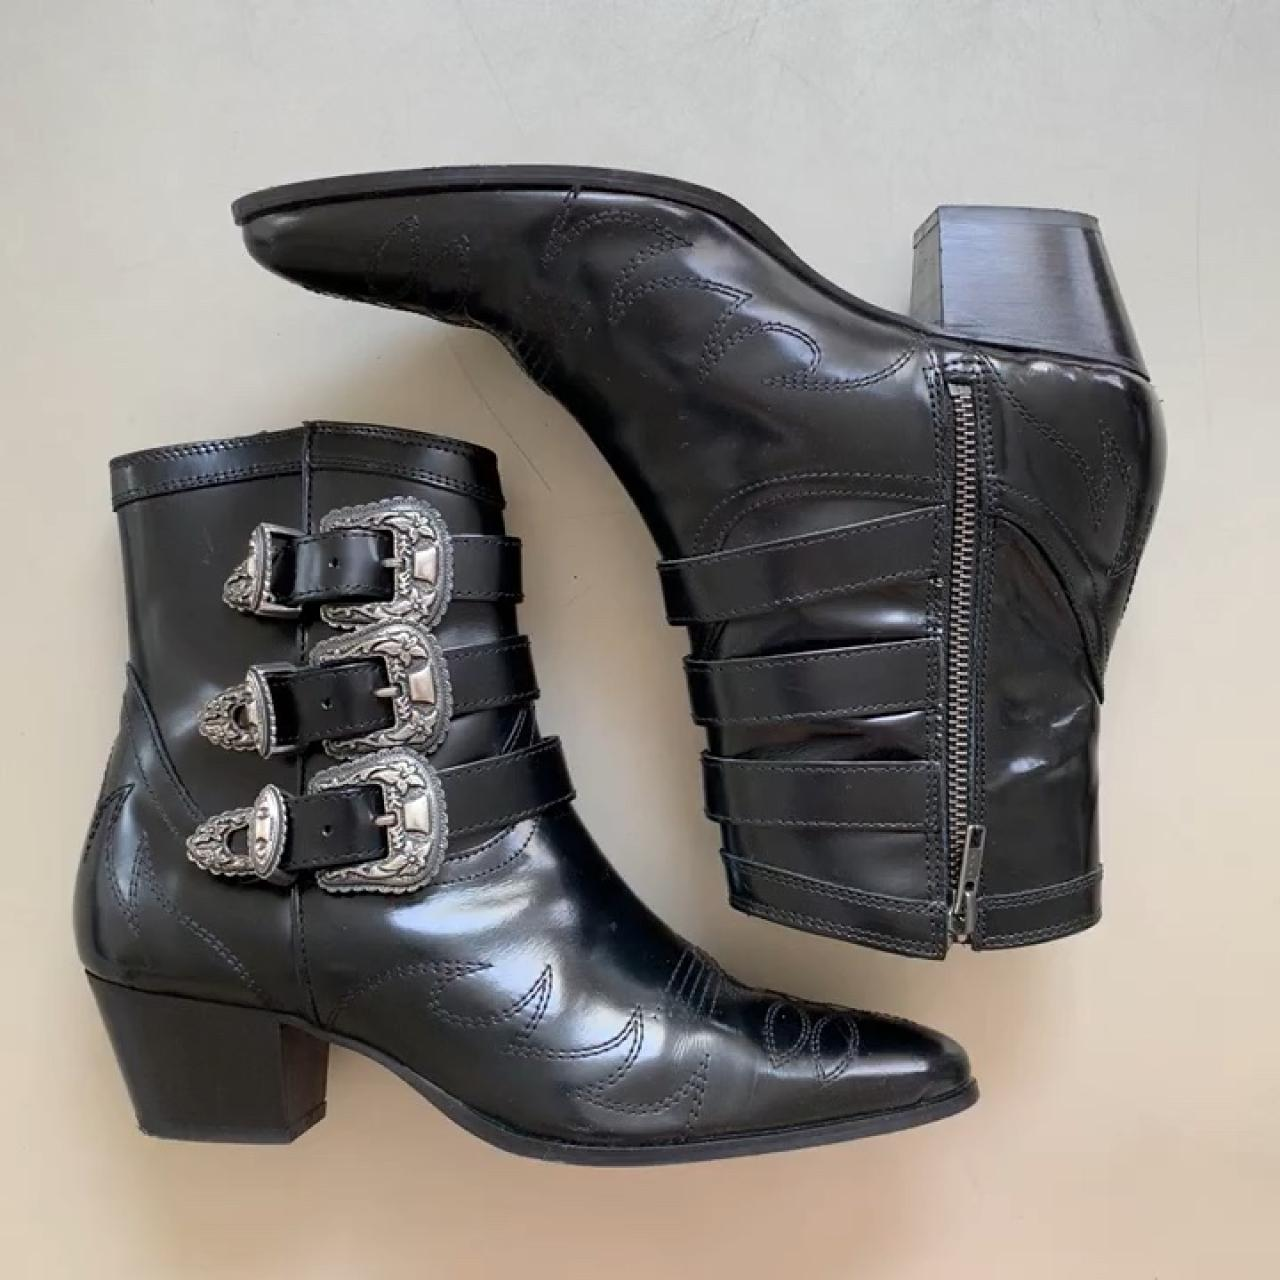 The Kooples Black Leather Cowboy boots